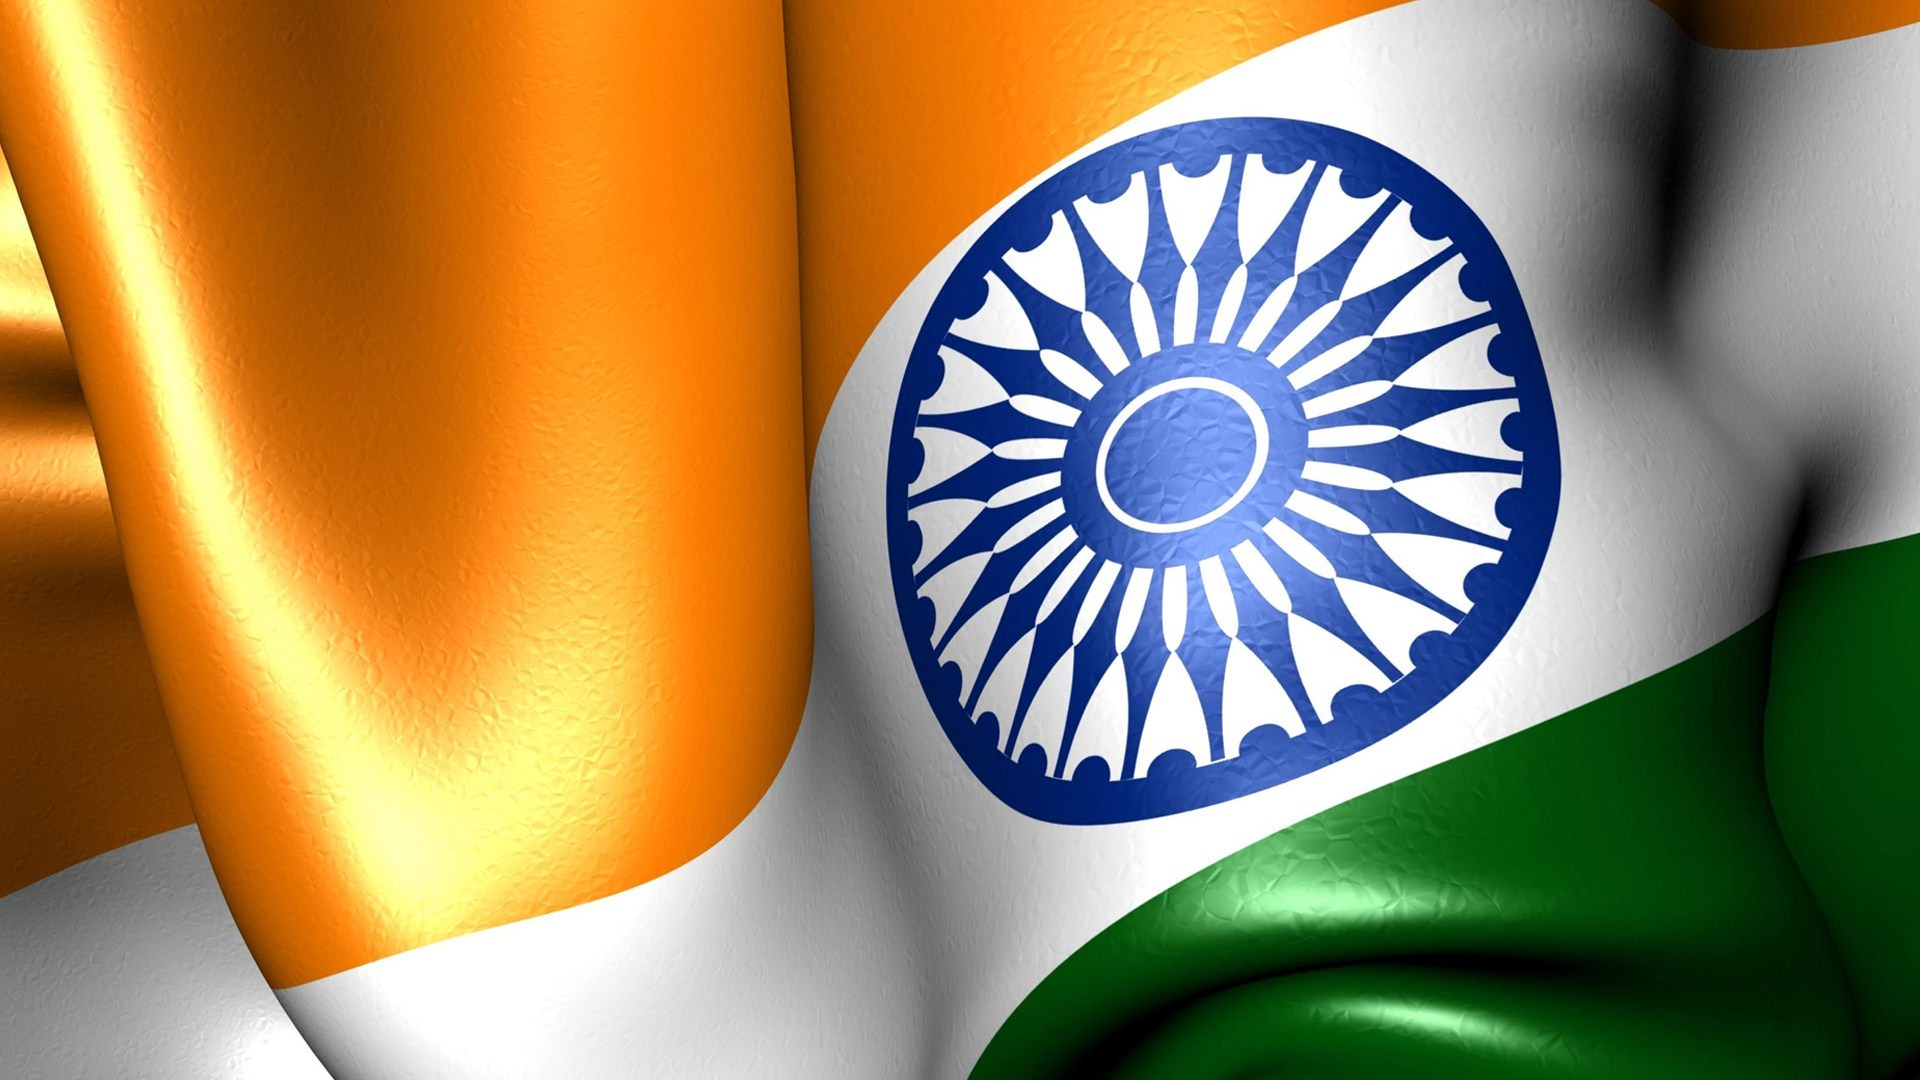 indian flag hd images wallpapers free download – atulhost